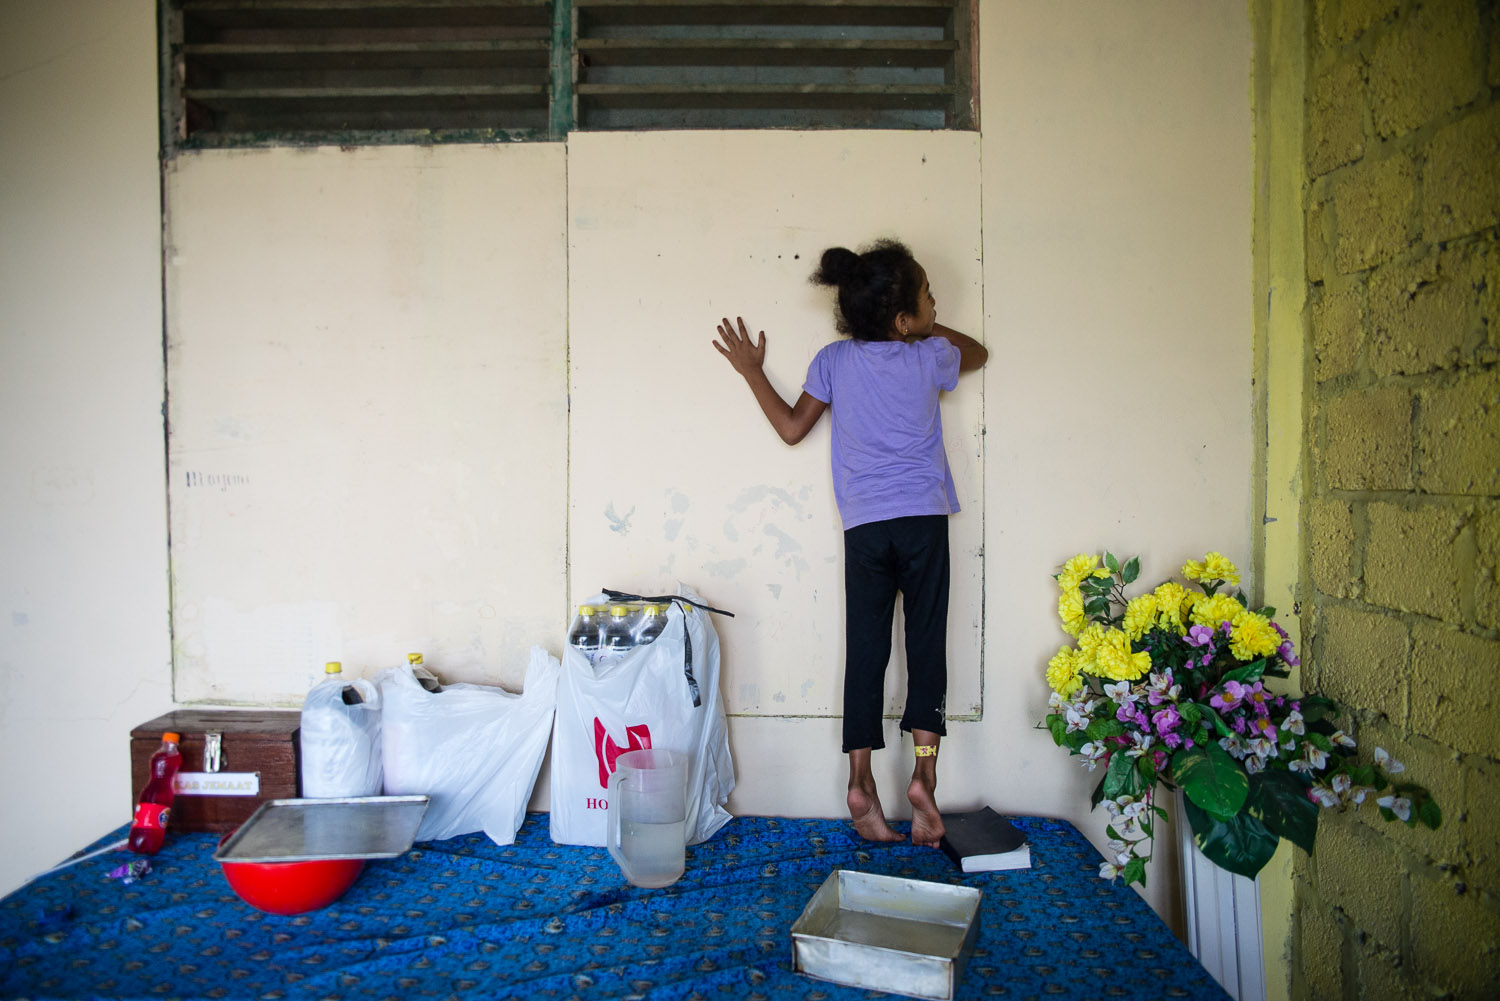 Shulamith, the youngest child of Diane and Harun, the leaders of the Papuan Jewish community, listens for her family's activities through the wall, standing on the table that Diane is to use to make Challah for the night's Shabbat dinner.